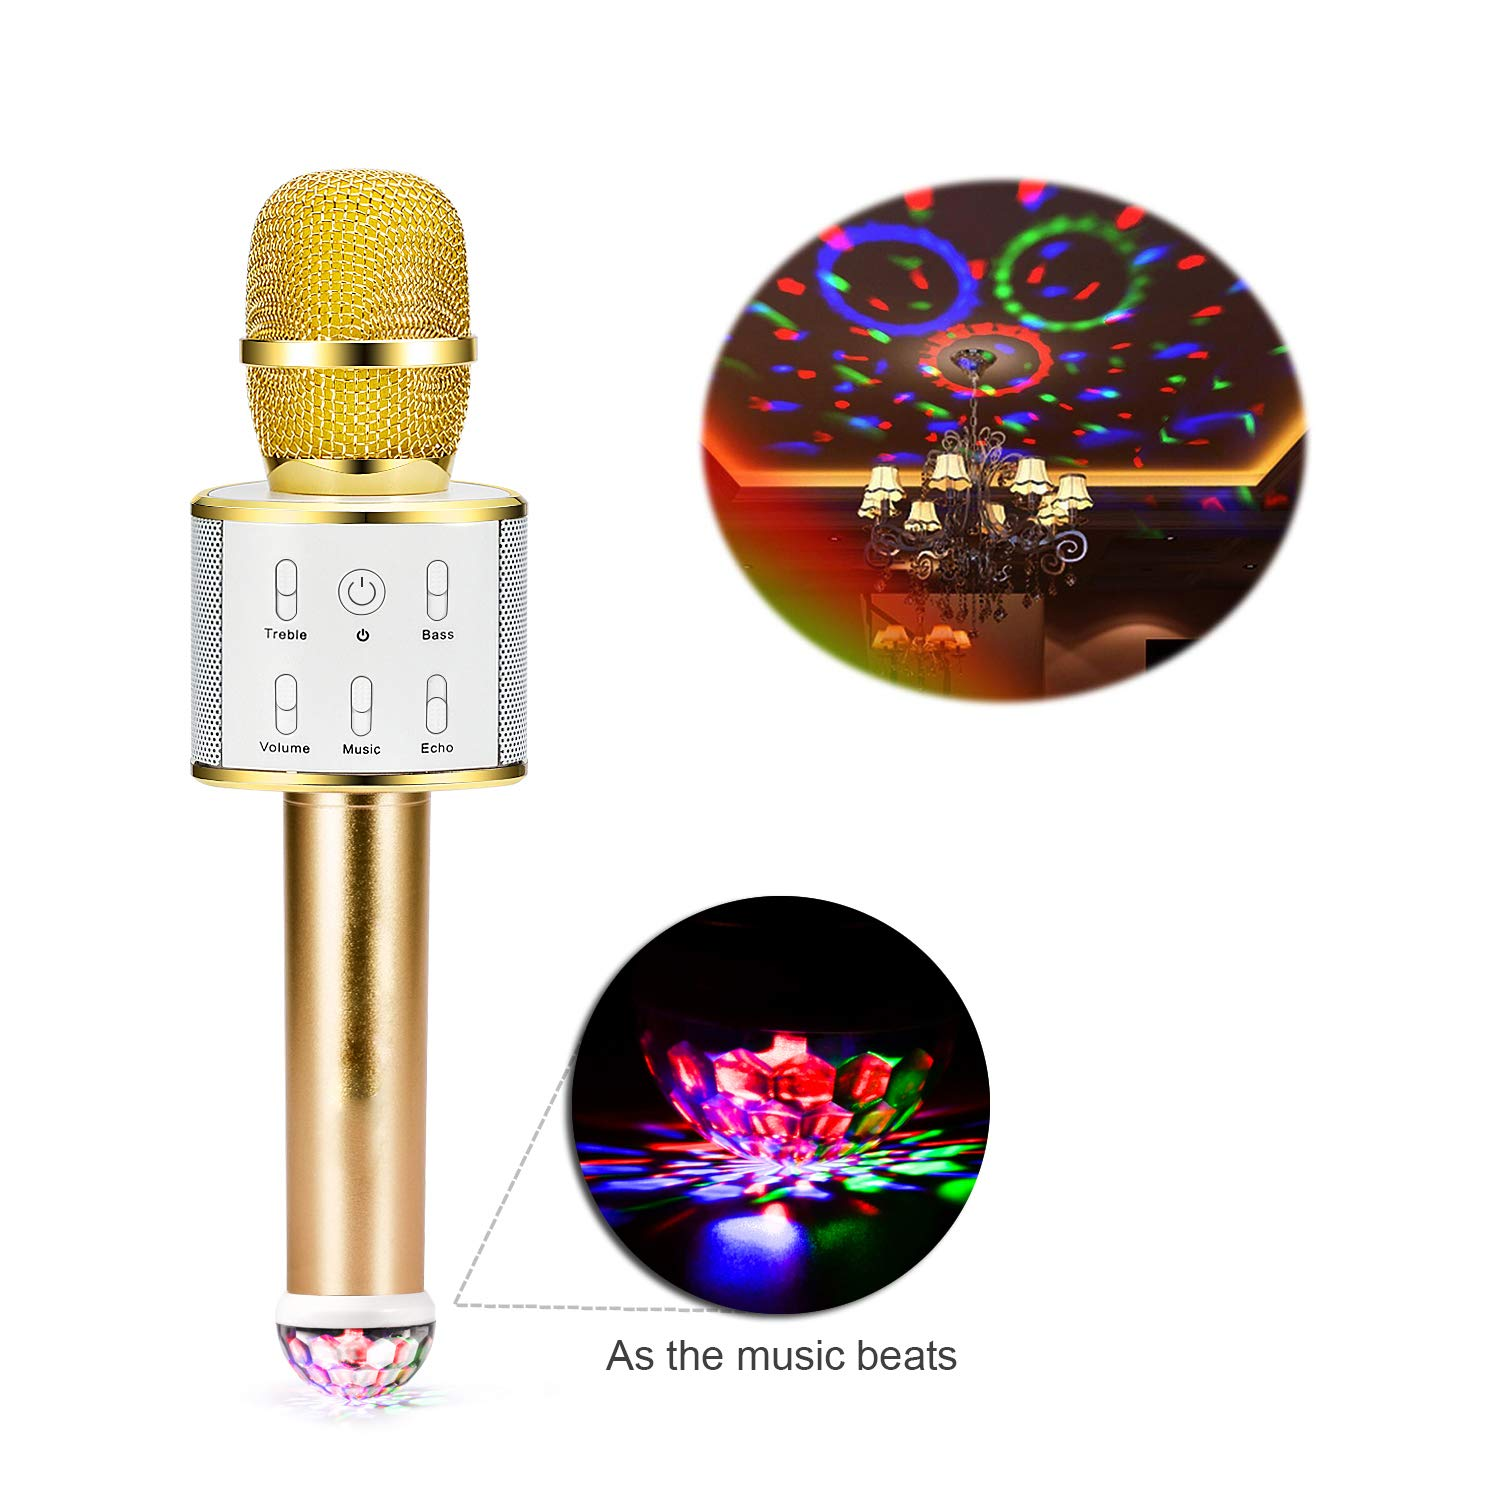 kilokelvin Wireless Bluetooth Karaoke Microphone Portable Karaoke mic Speaker with stage lights, Original Sing Mode free to switch (Purple) q8